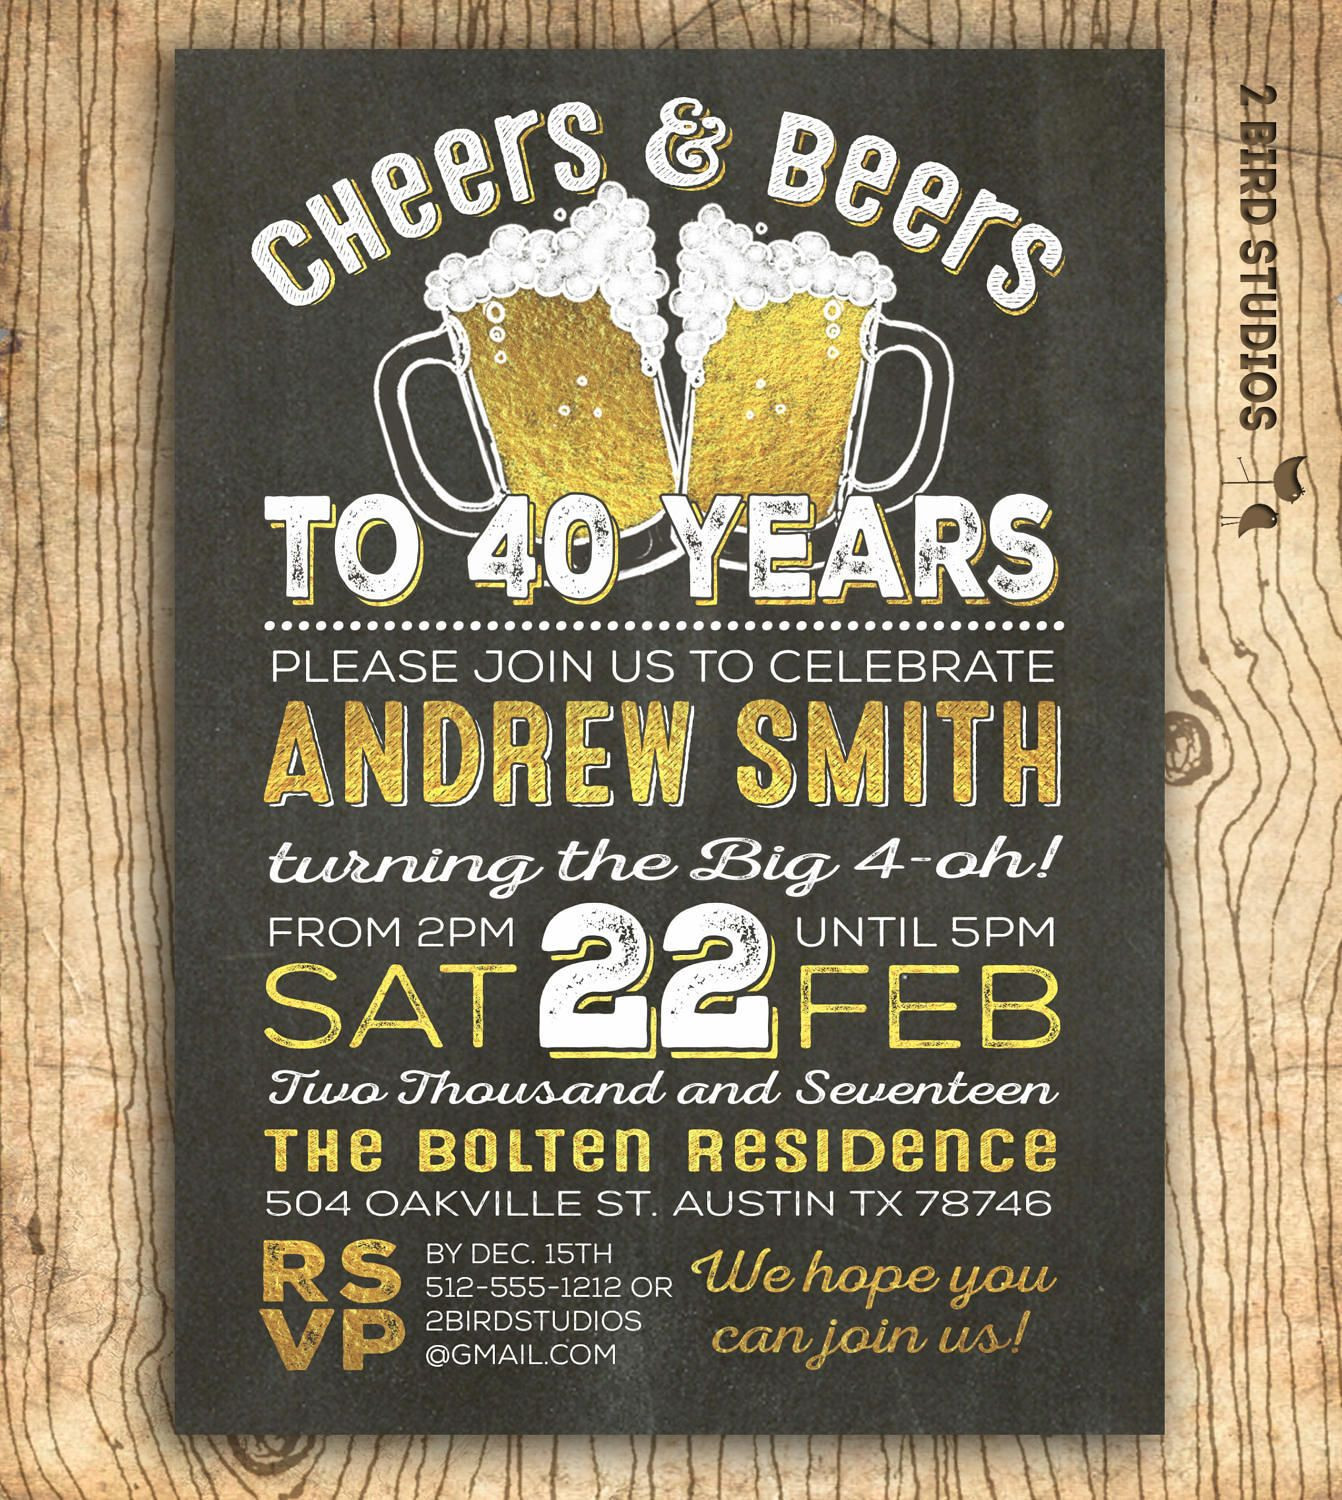 Best ideas about 40th Birthday Invitations For Him . Save or Pin 40th birthday invitation for men Cheers & beers to 40 years Now.